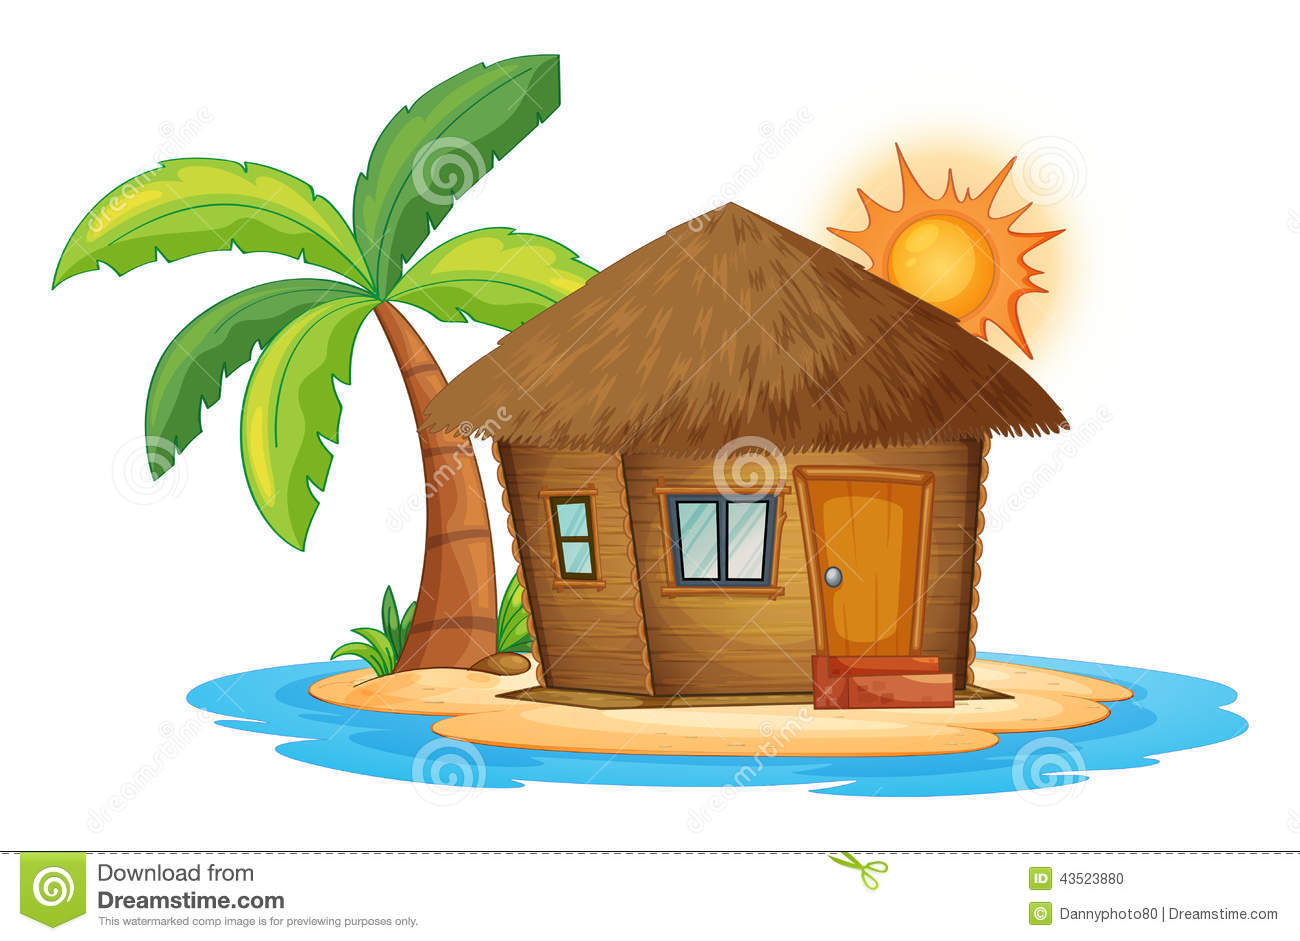 small nipa hut island illustration white background 43523880